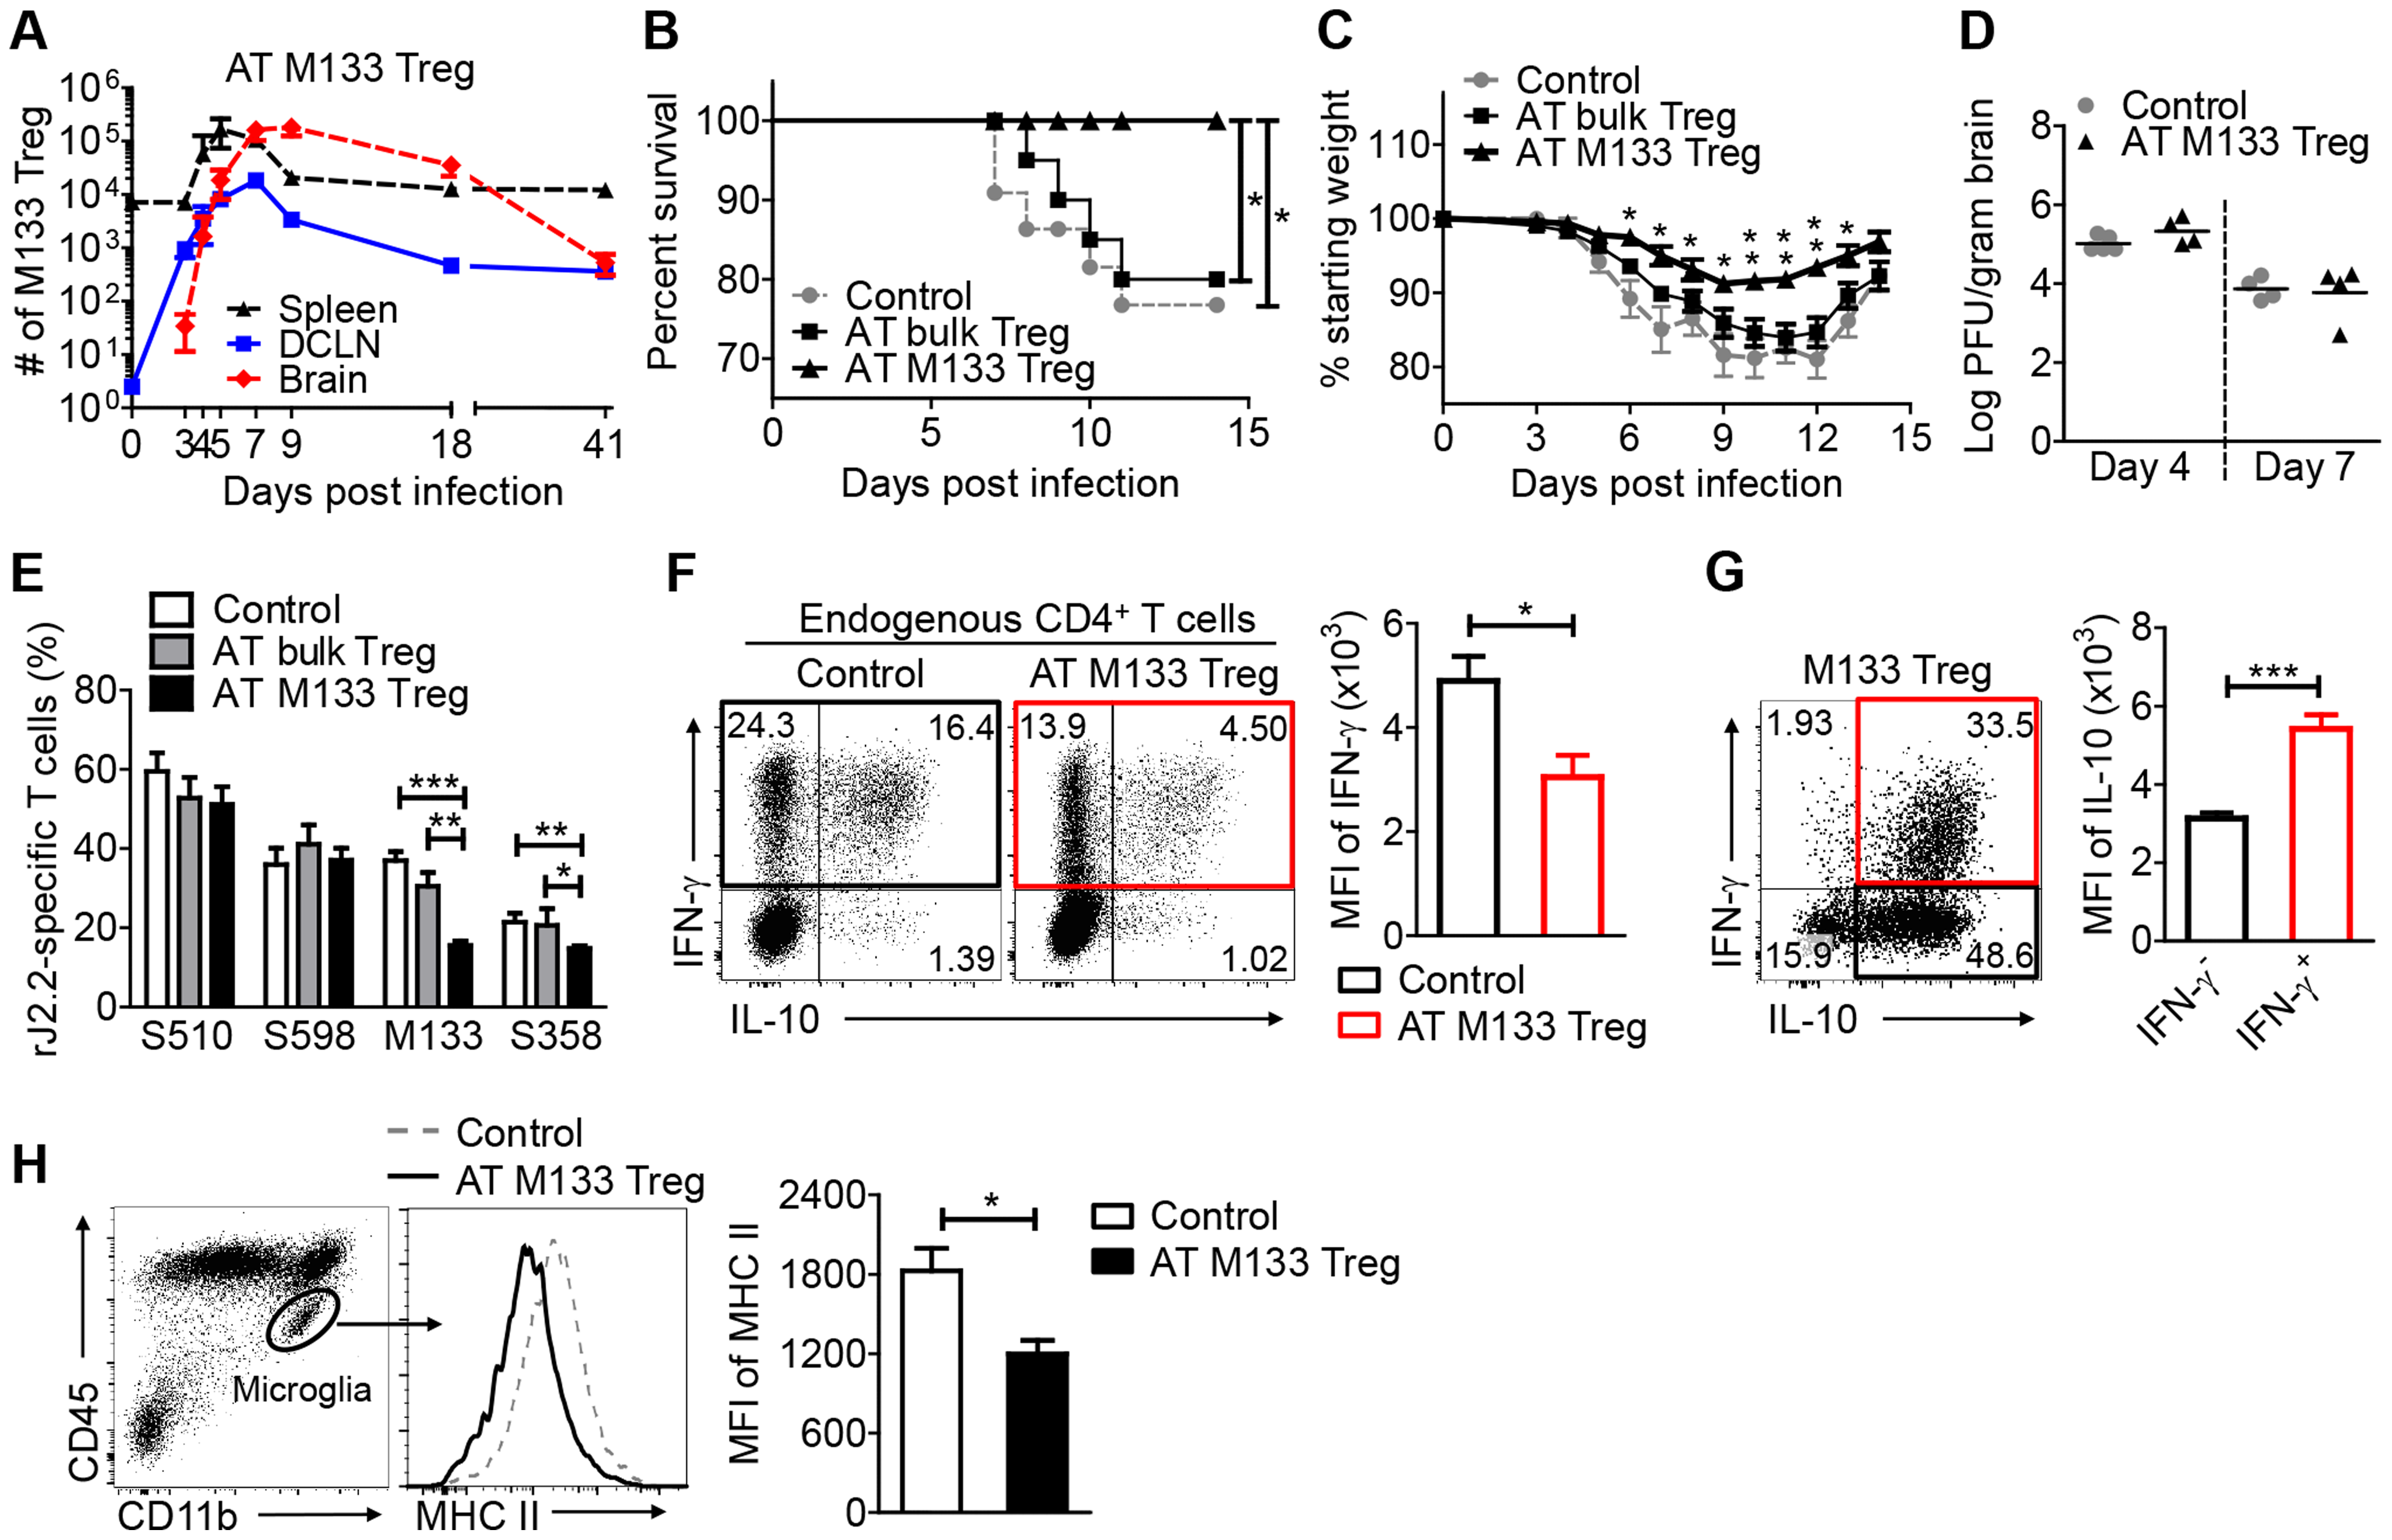 Transferred M133 Tregs enhance survival and diminish the M133 Tconv immune response in the brain.